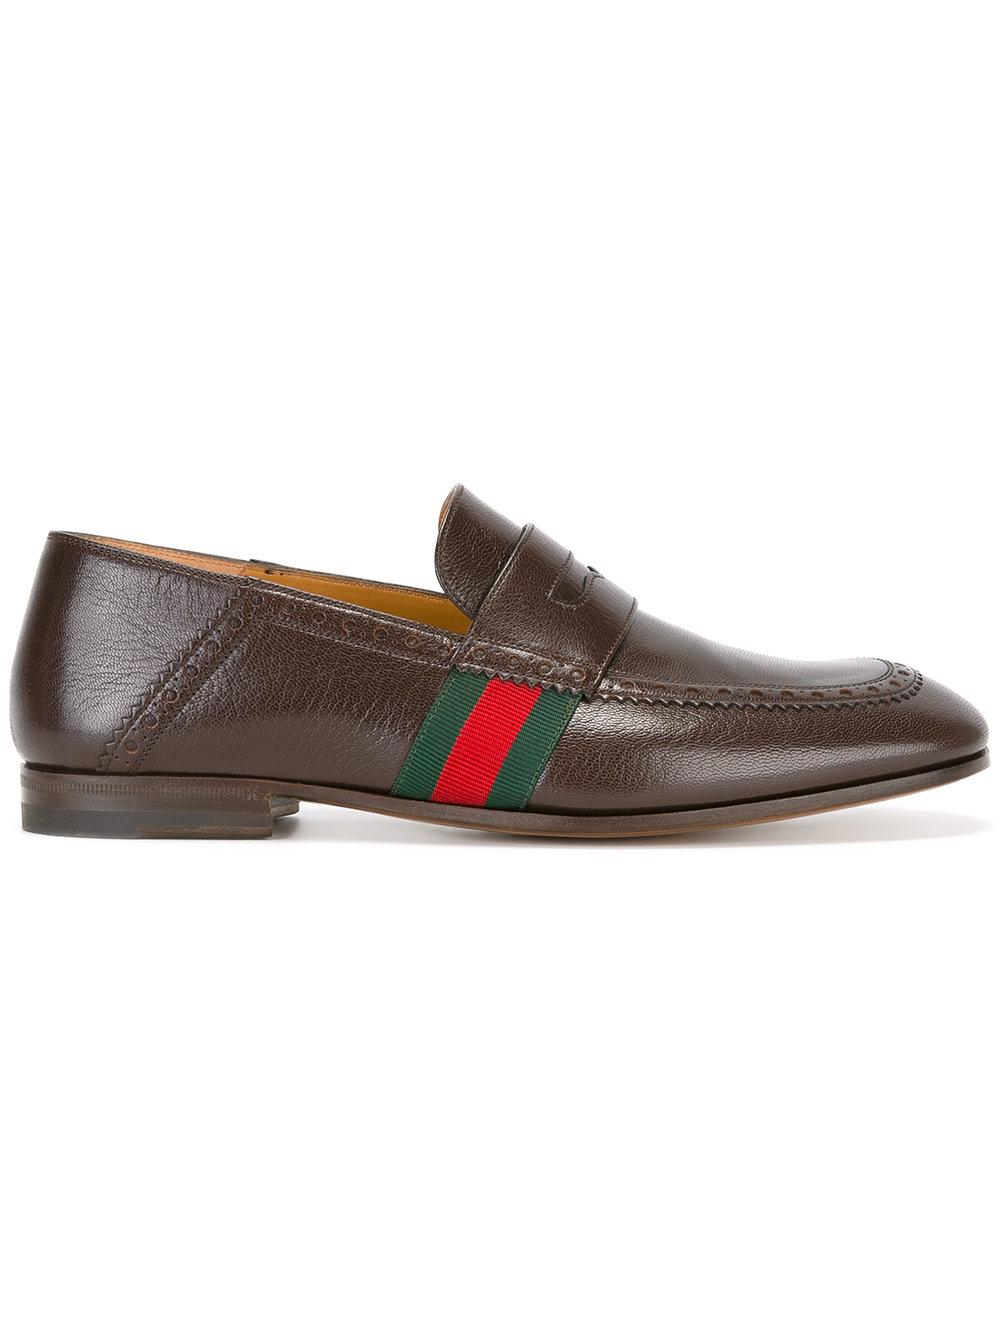 Gucci Web Trim Loafers in Brown for Men